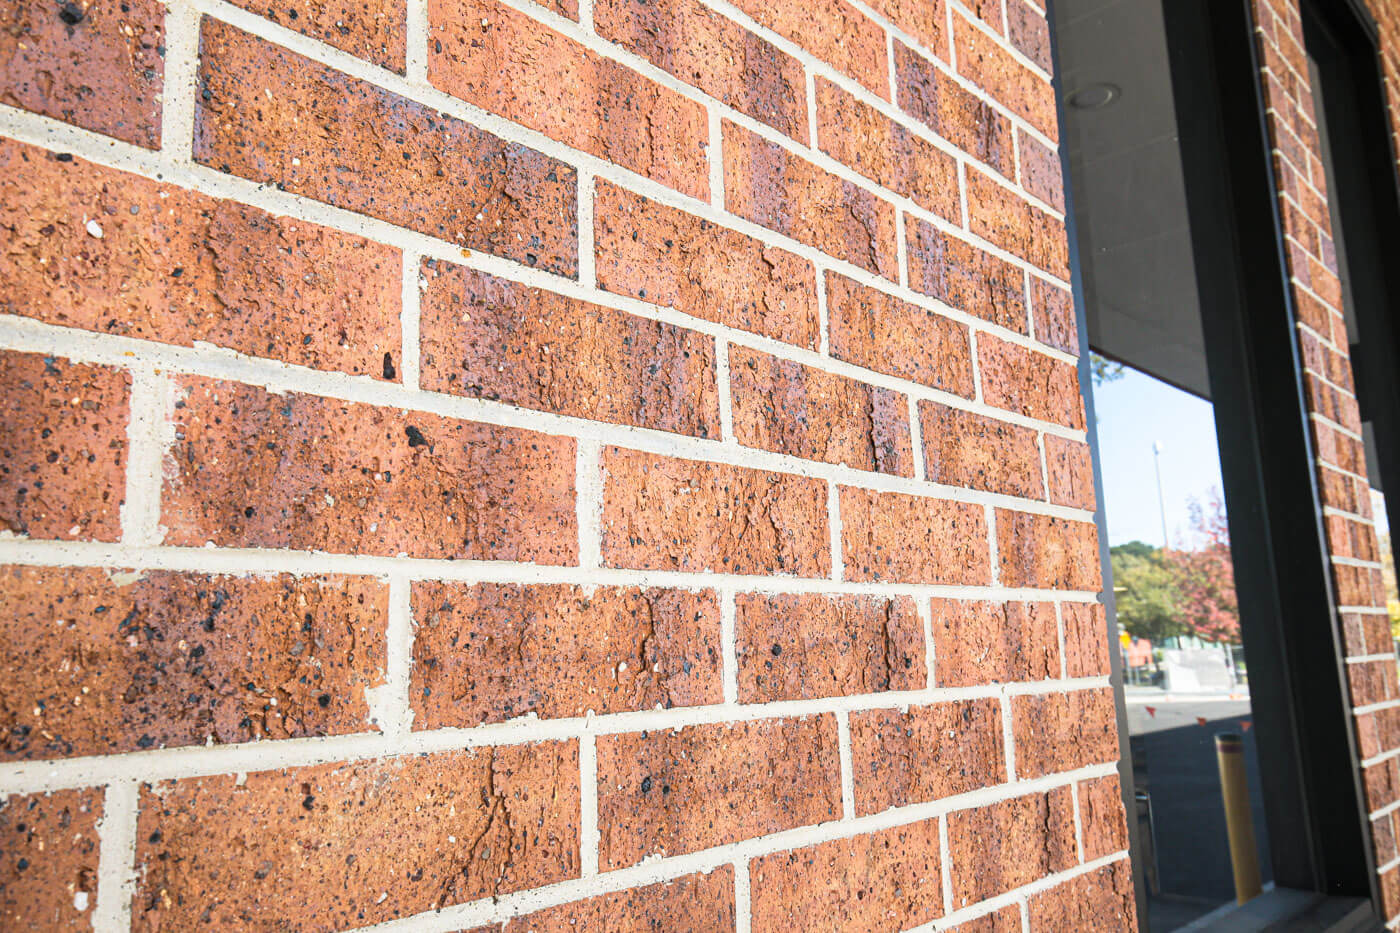 Siena Brick Woodside Shopping Centre Rs 8